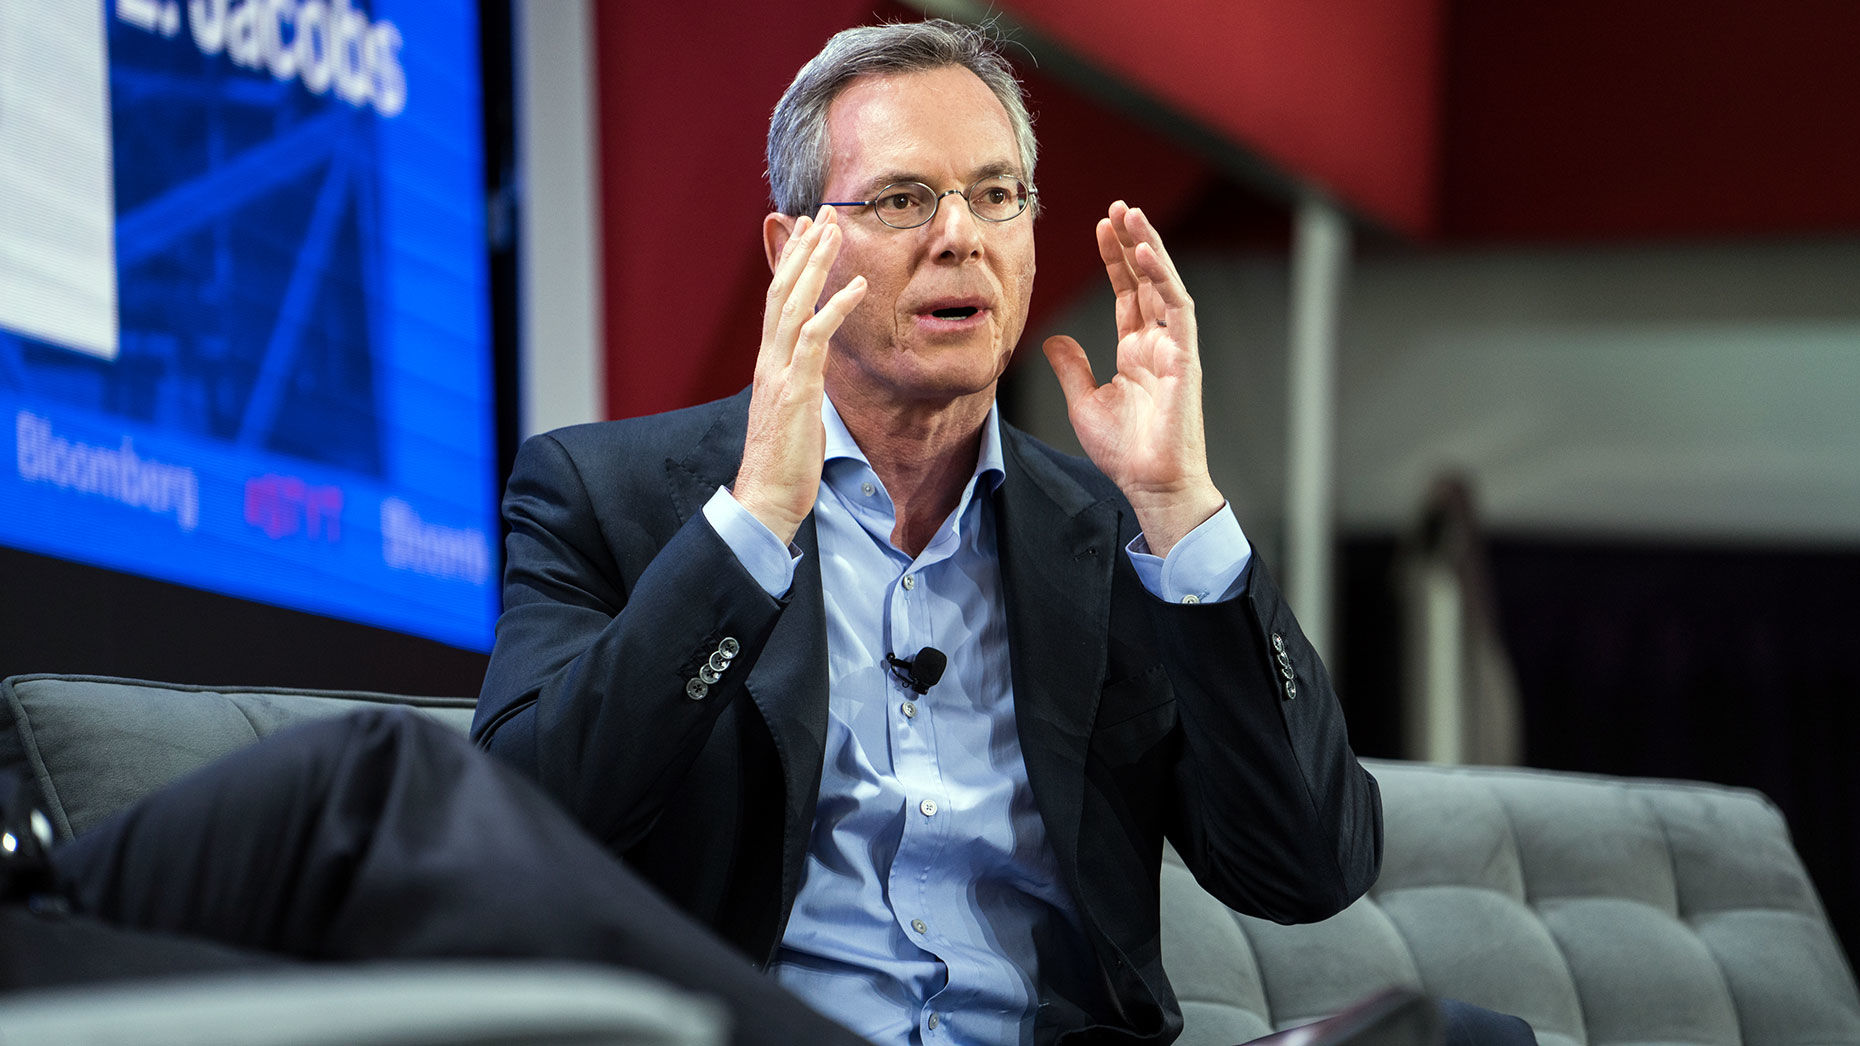 Former Qualcomm executive chairman and CEO Paul Jacobs. Photo: Bloomberg